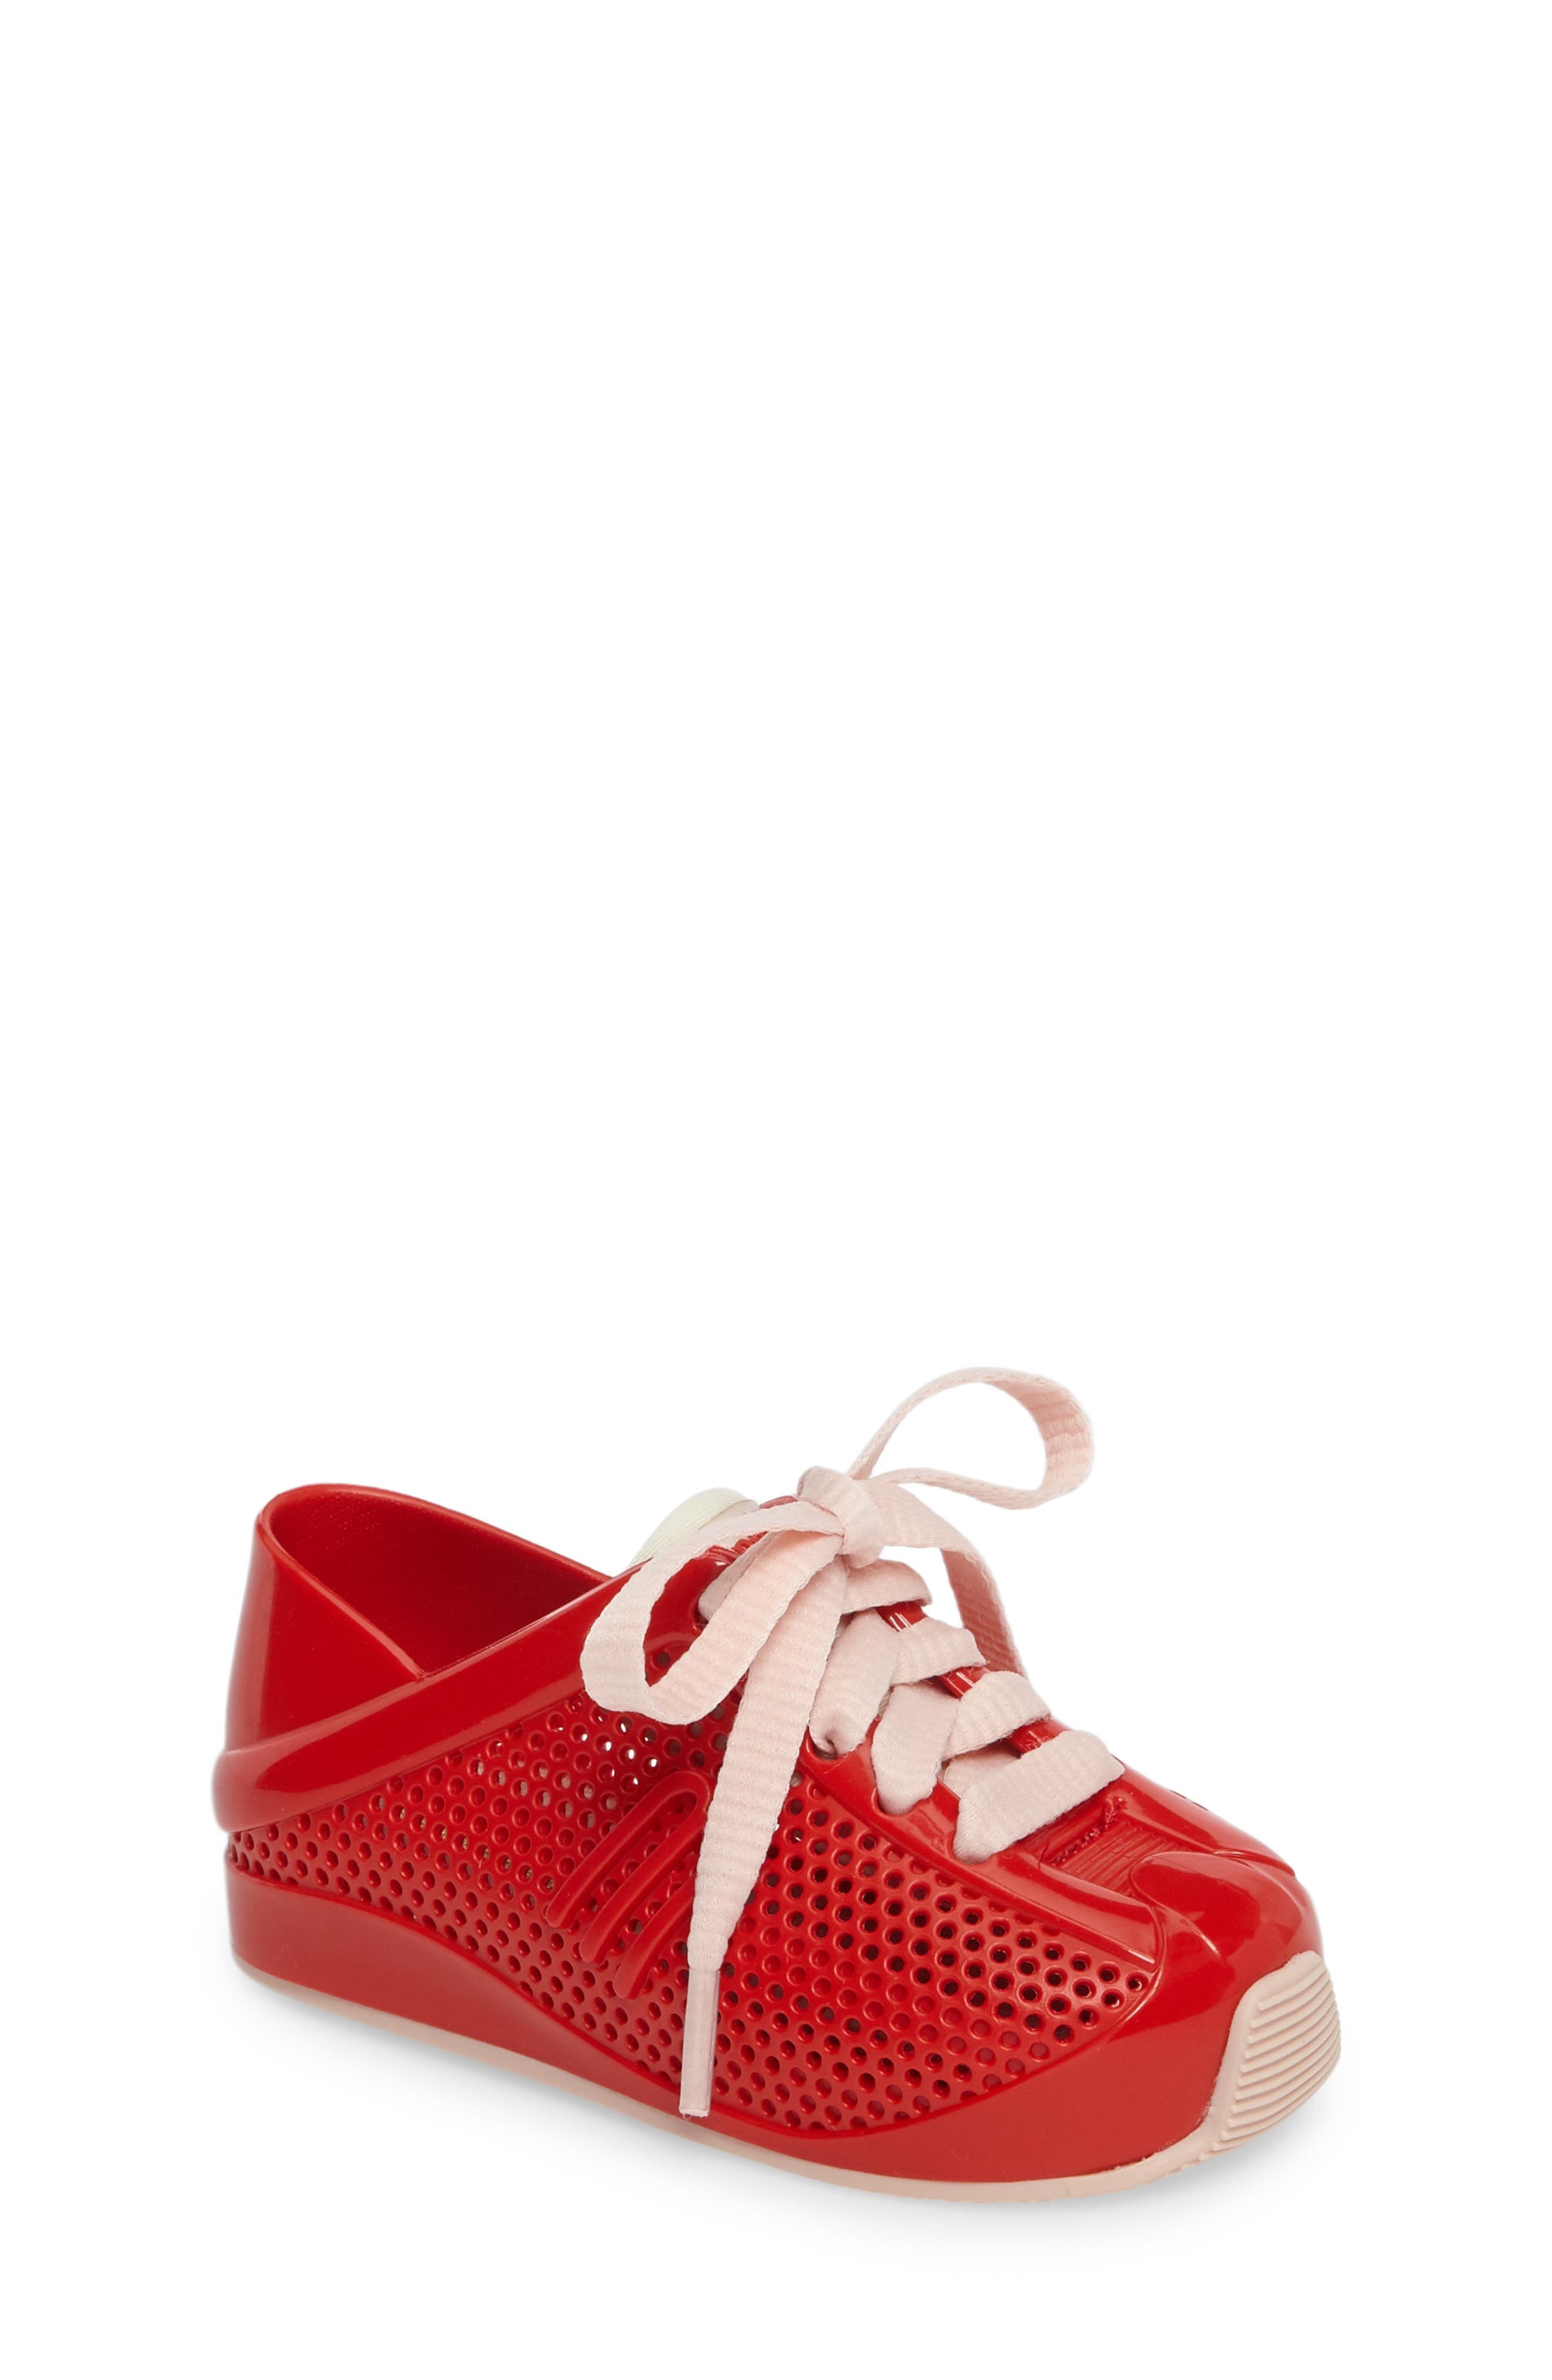 'Love System' Sneaker,                         Main,                         color, Red